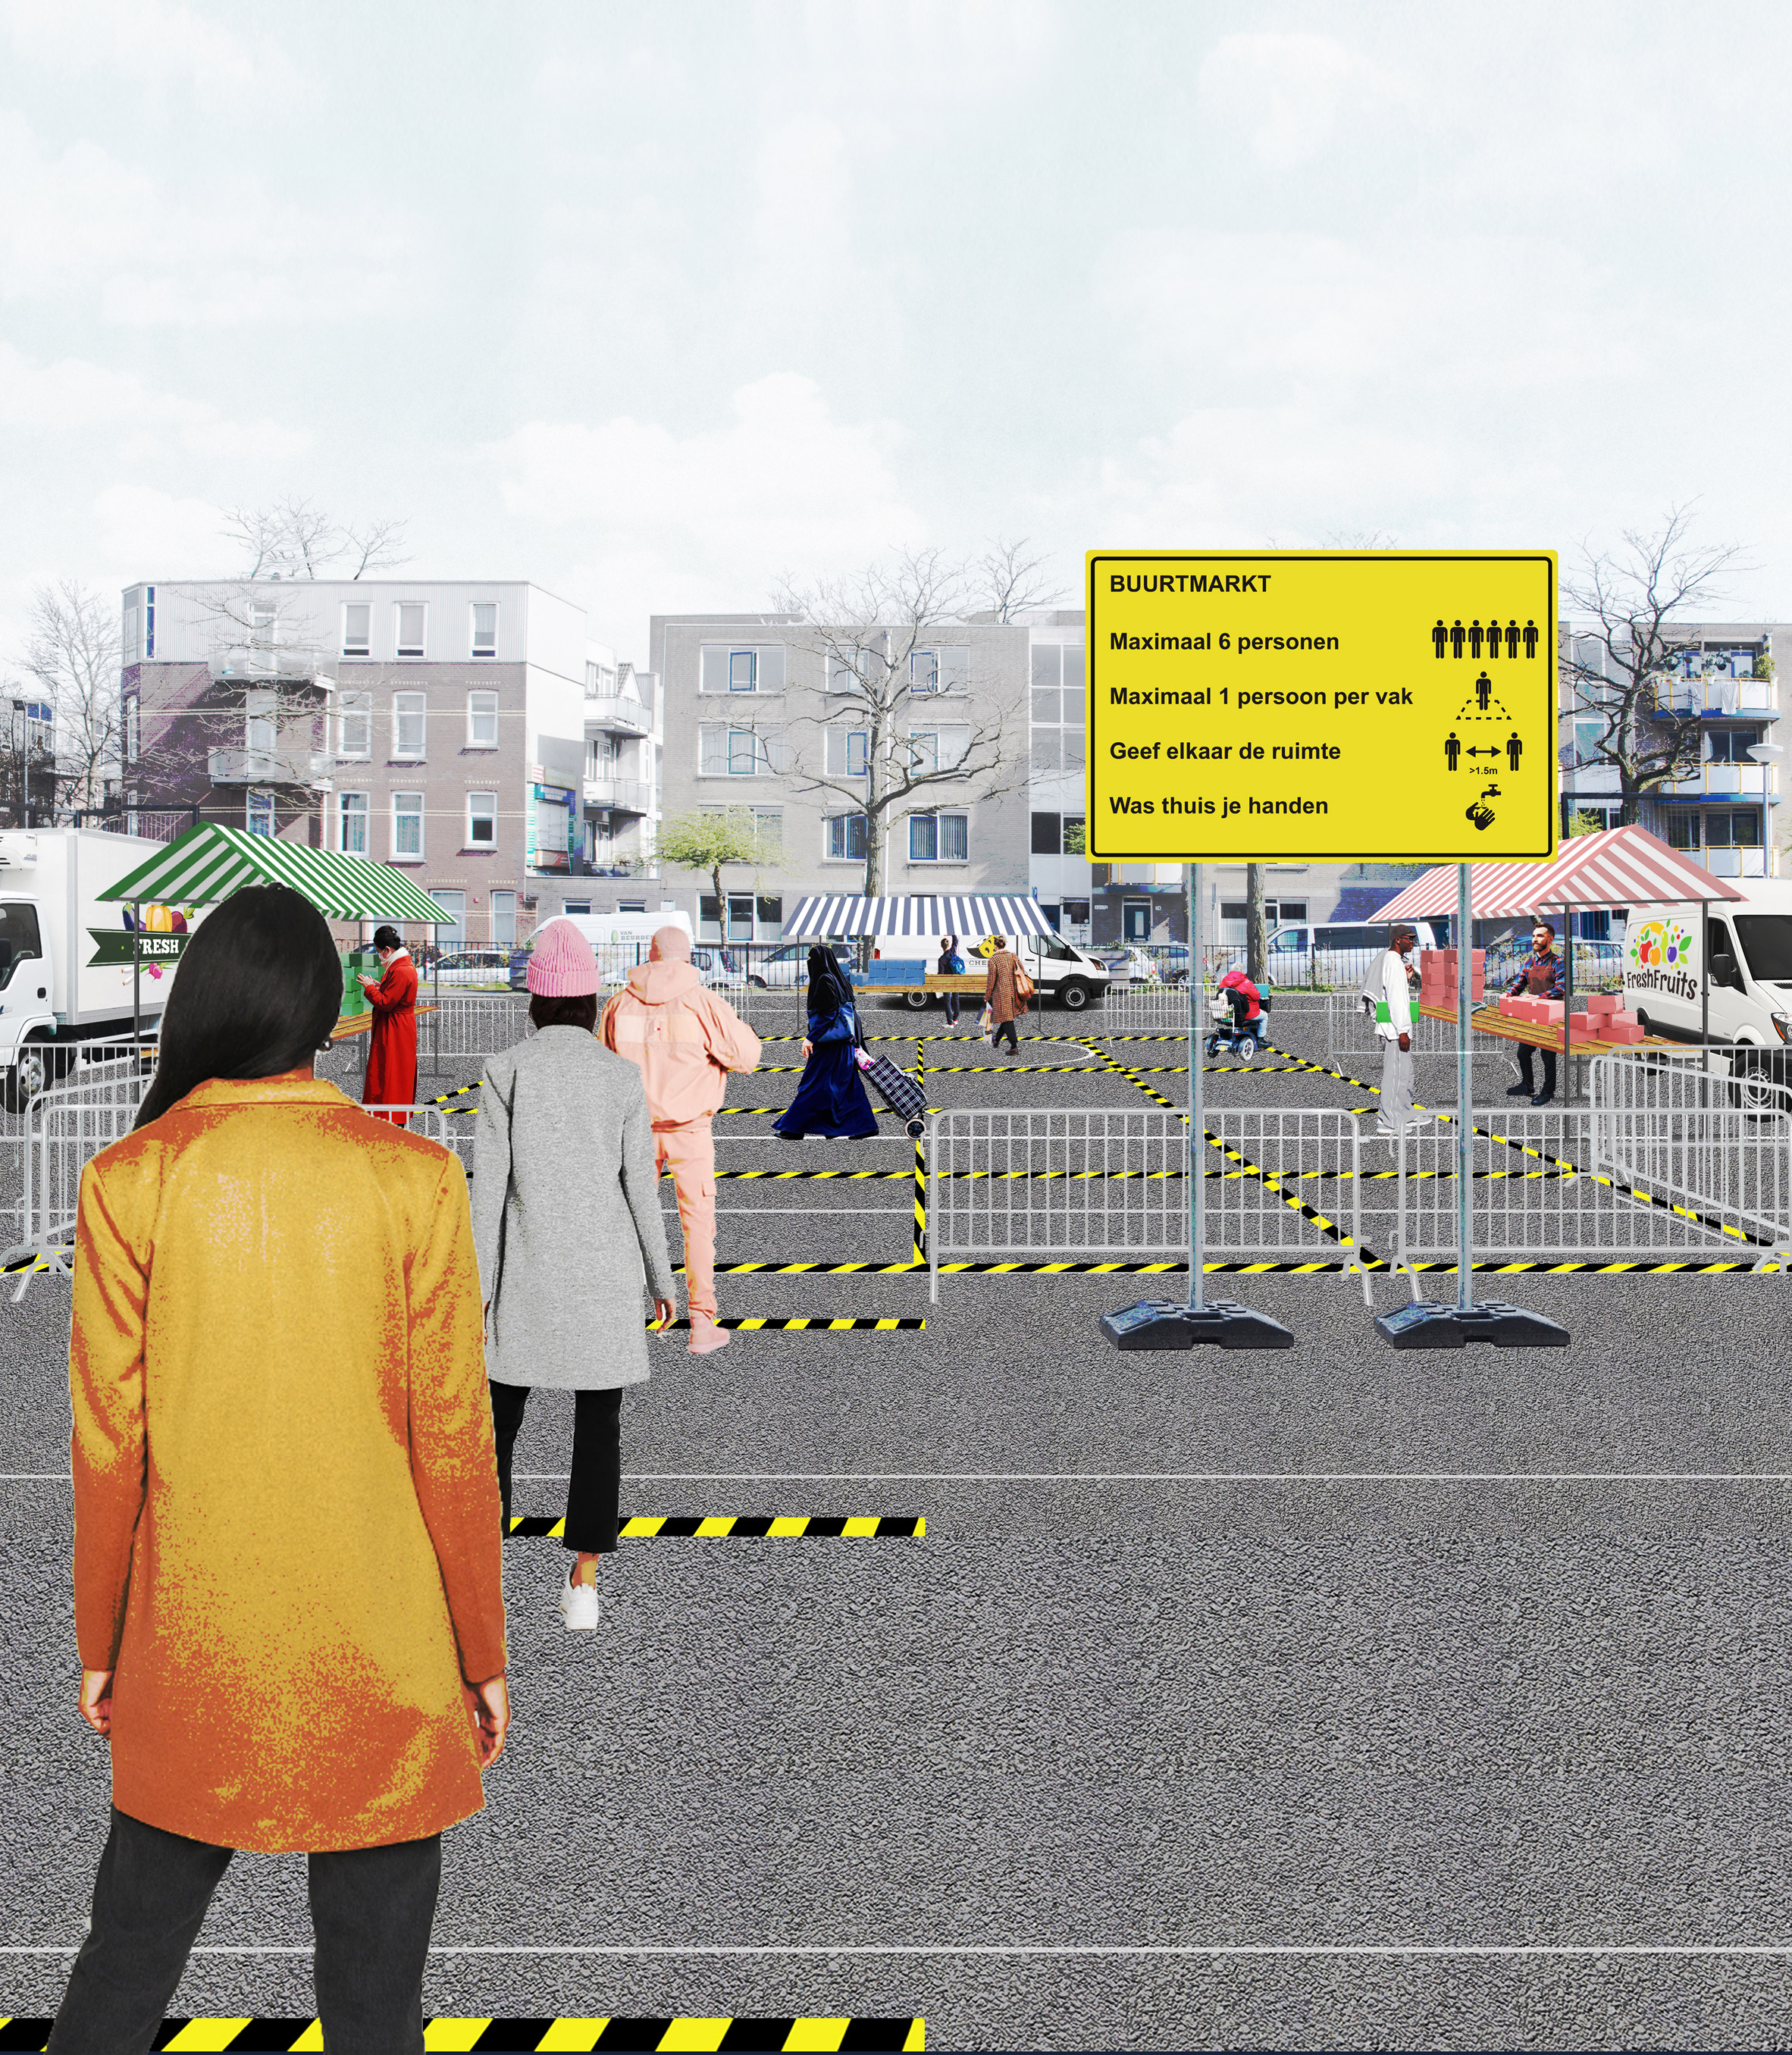 Hyperlocal Micro Markets by Shift Architecture Urbanism allow social distancing